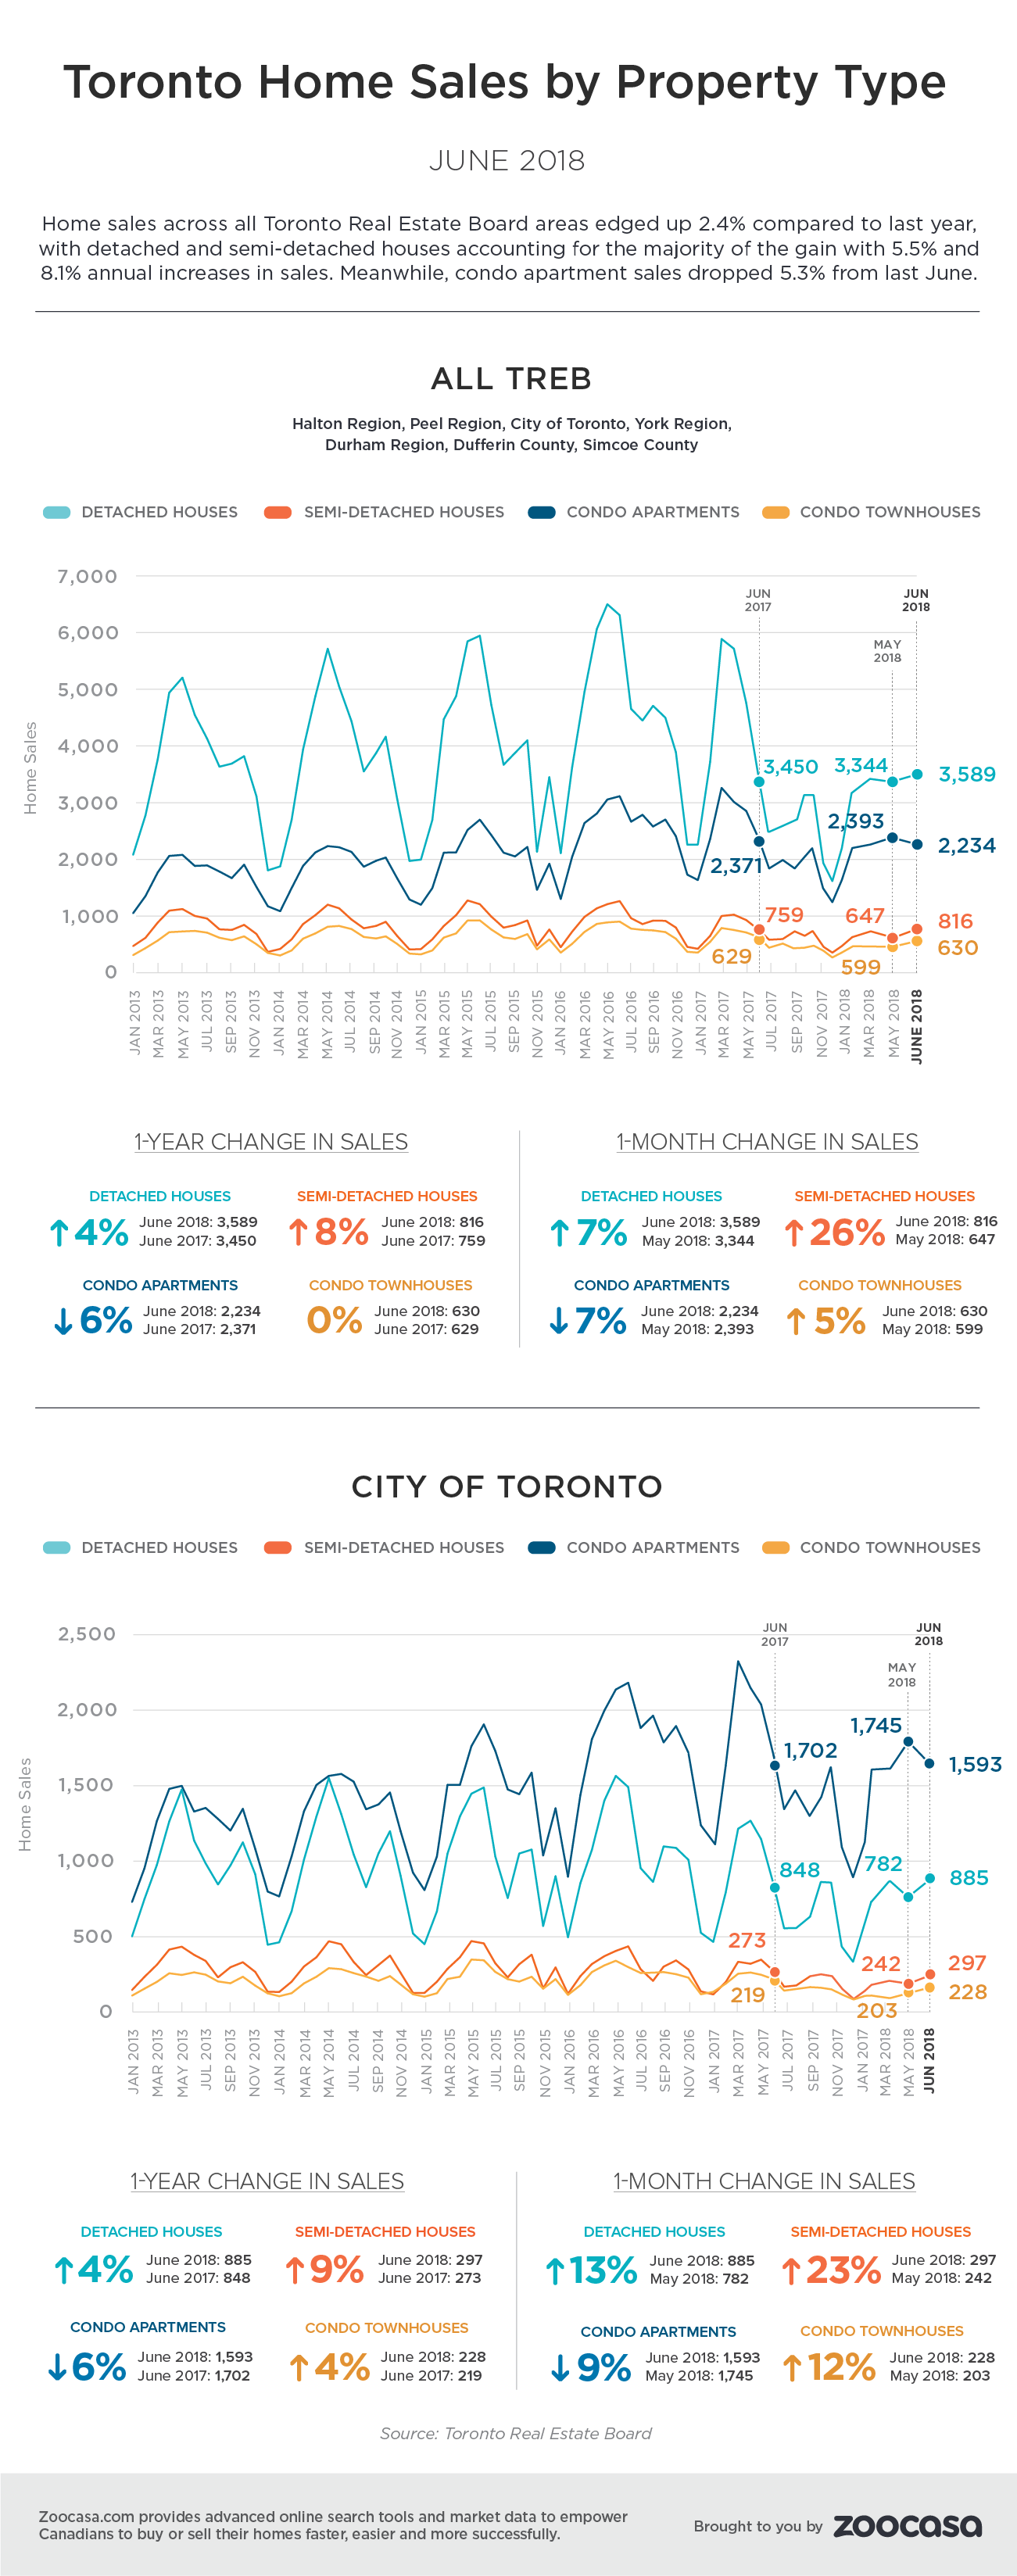 toronto-home-sales-june-2018-treb-zoocasa